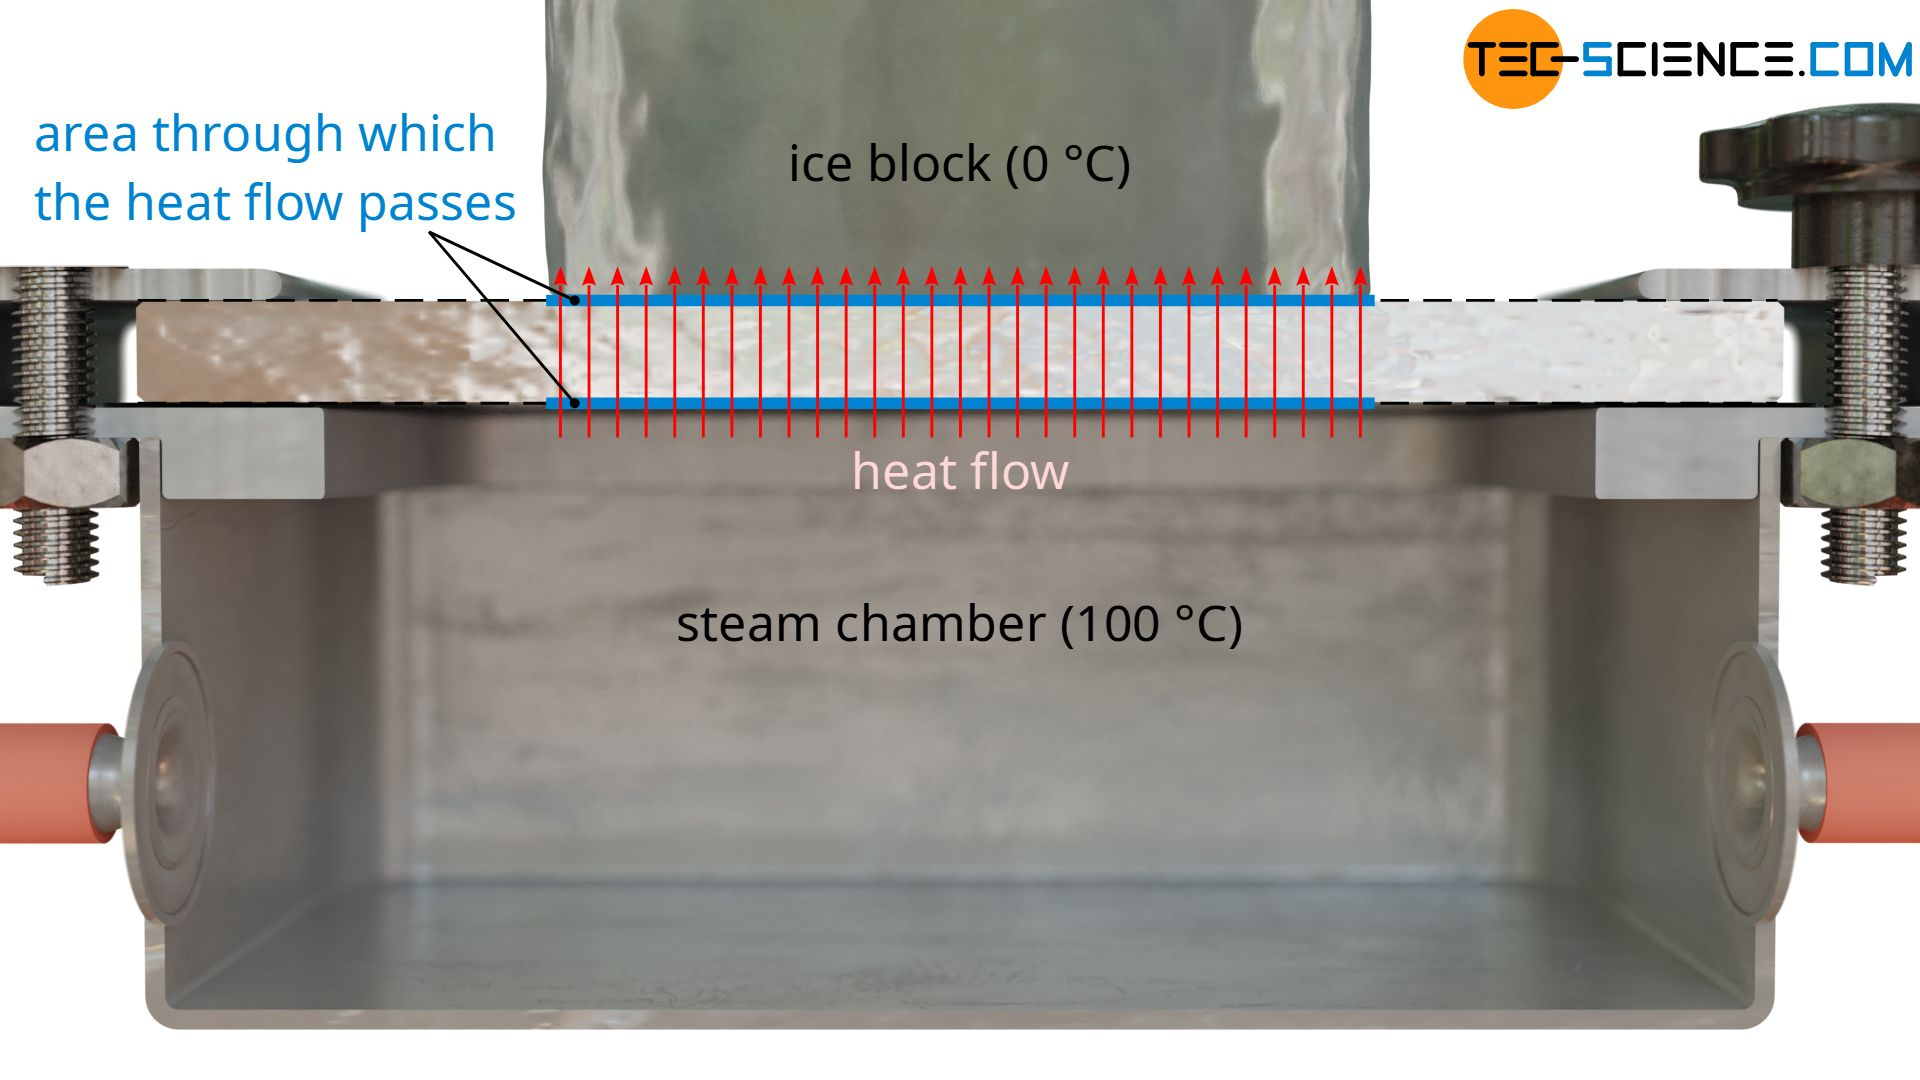 Heat flow relevant for the melting of the ice block